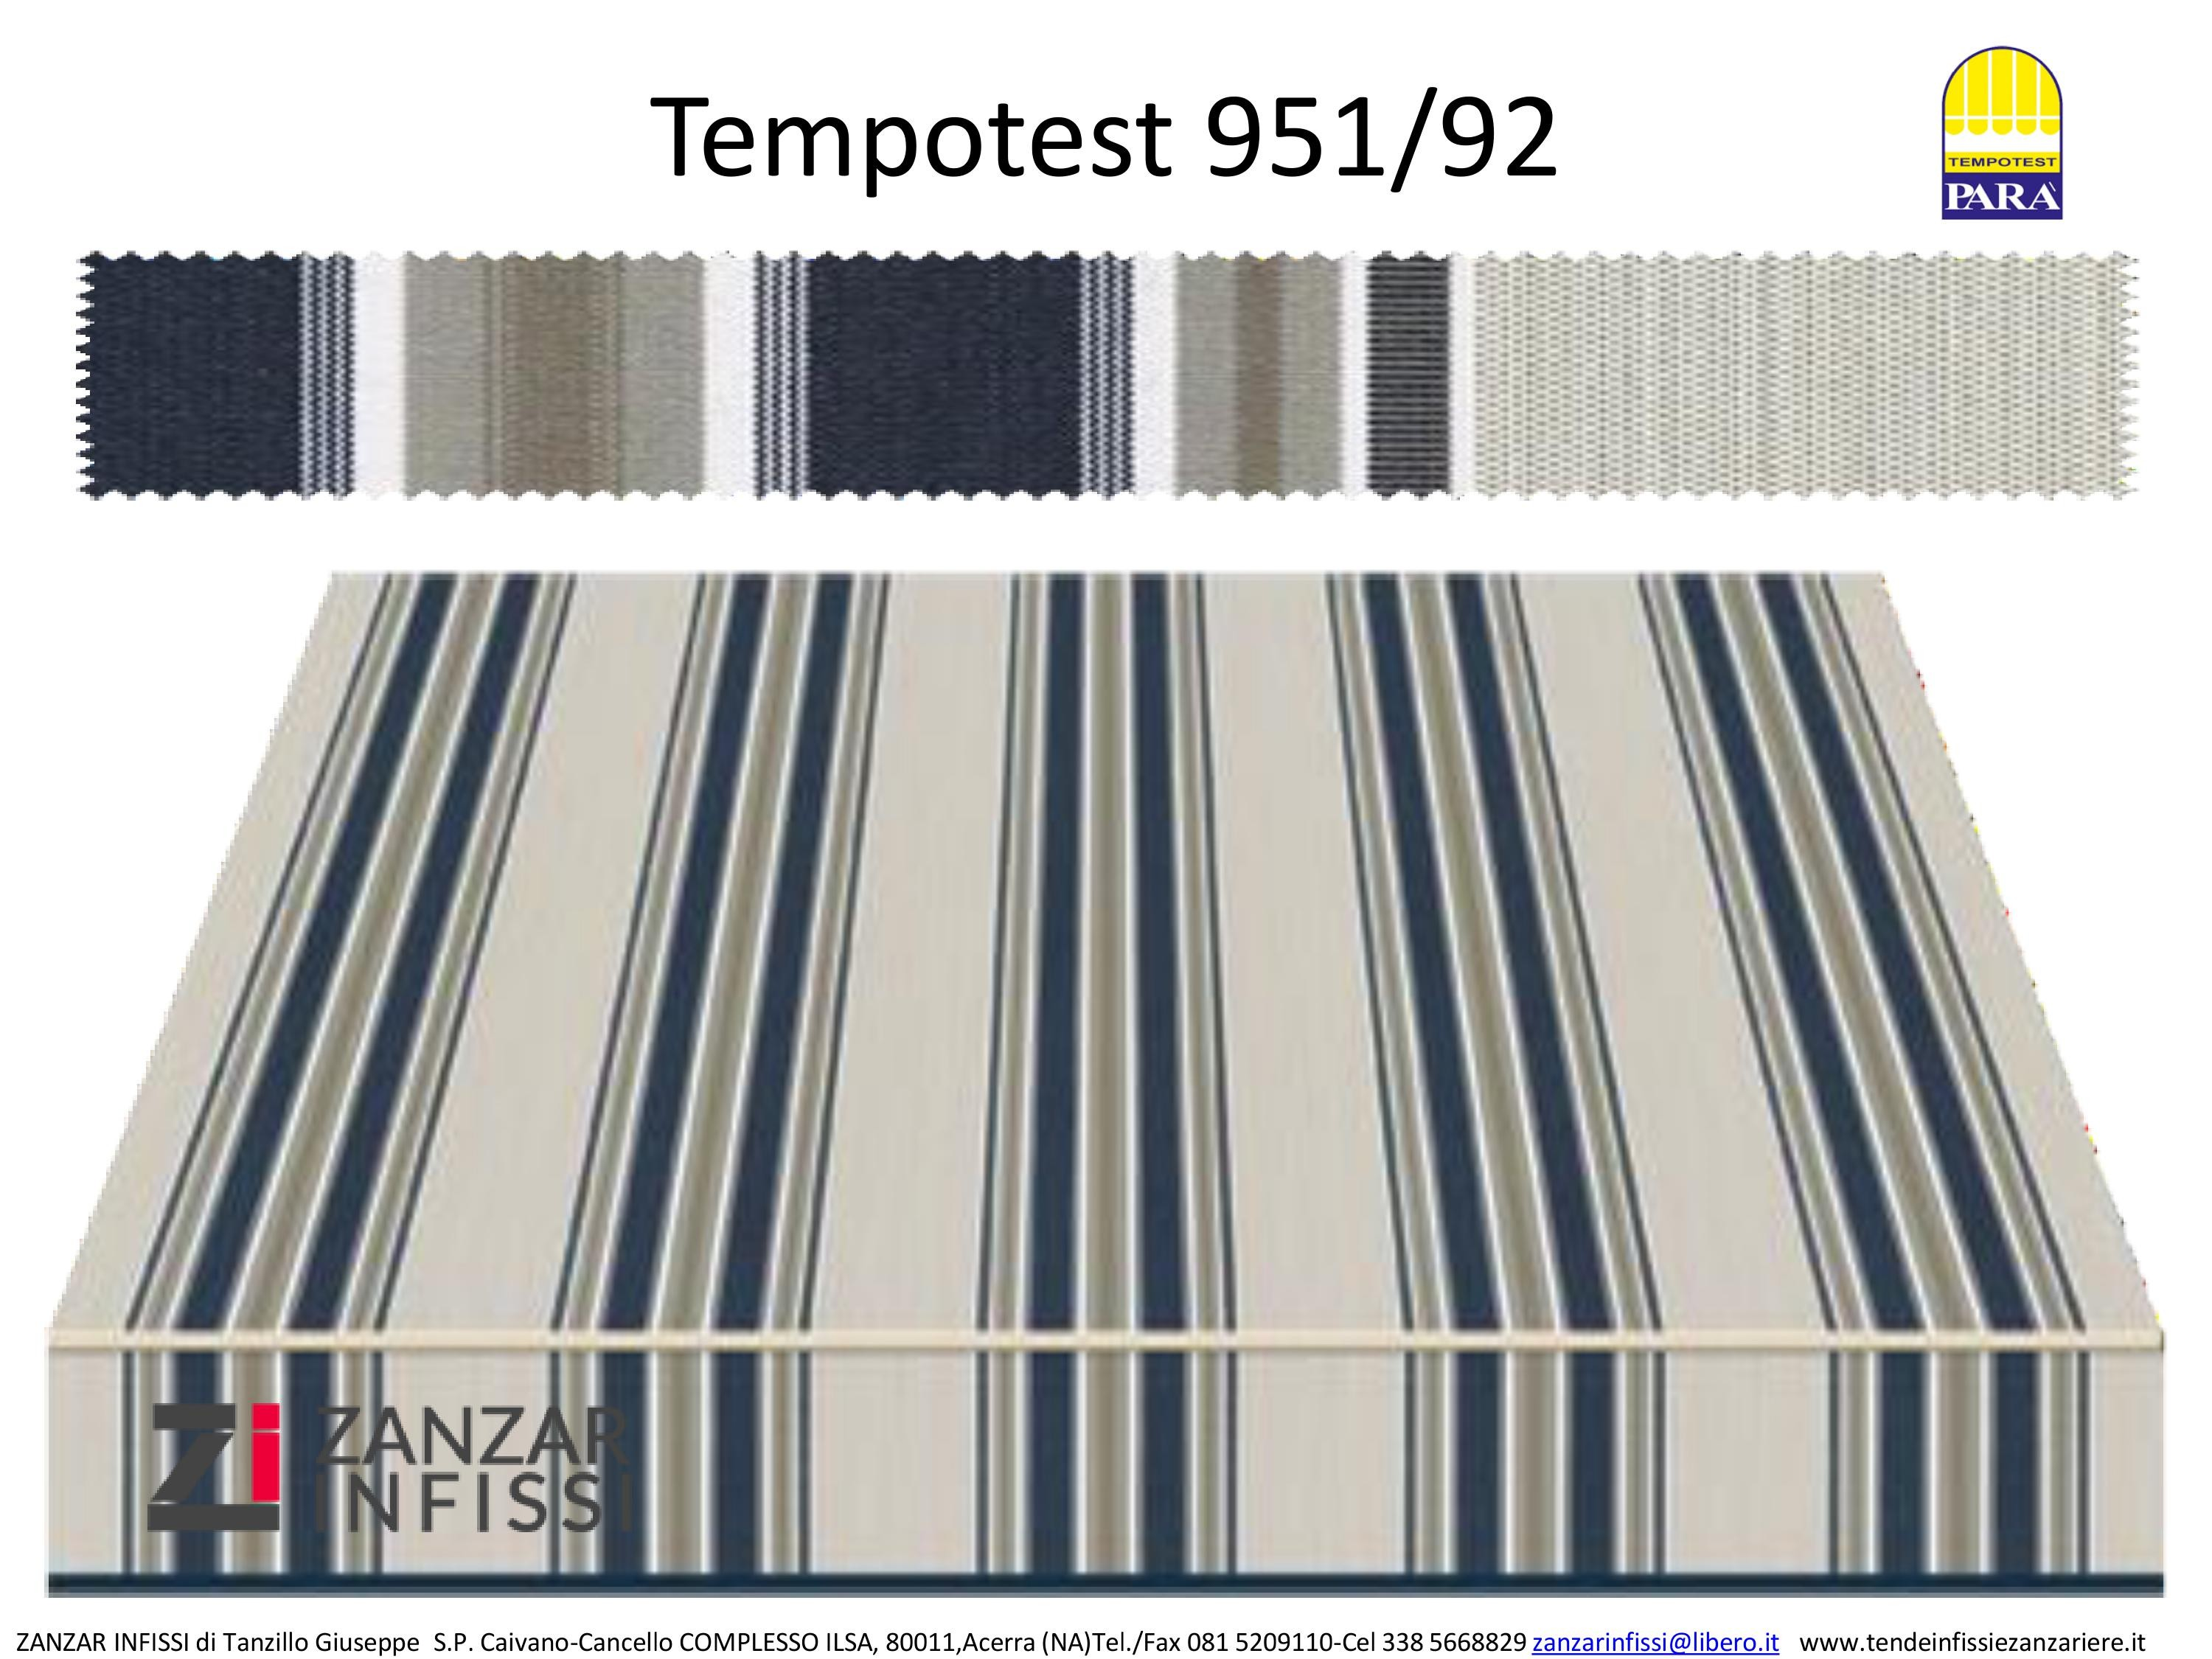 Tempotest 951/92